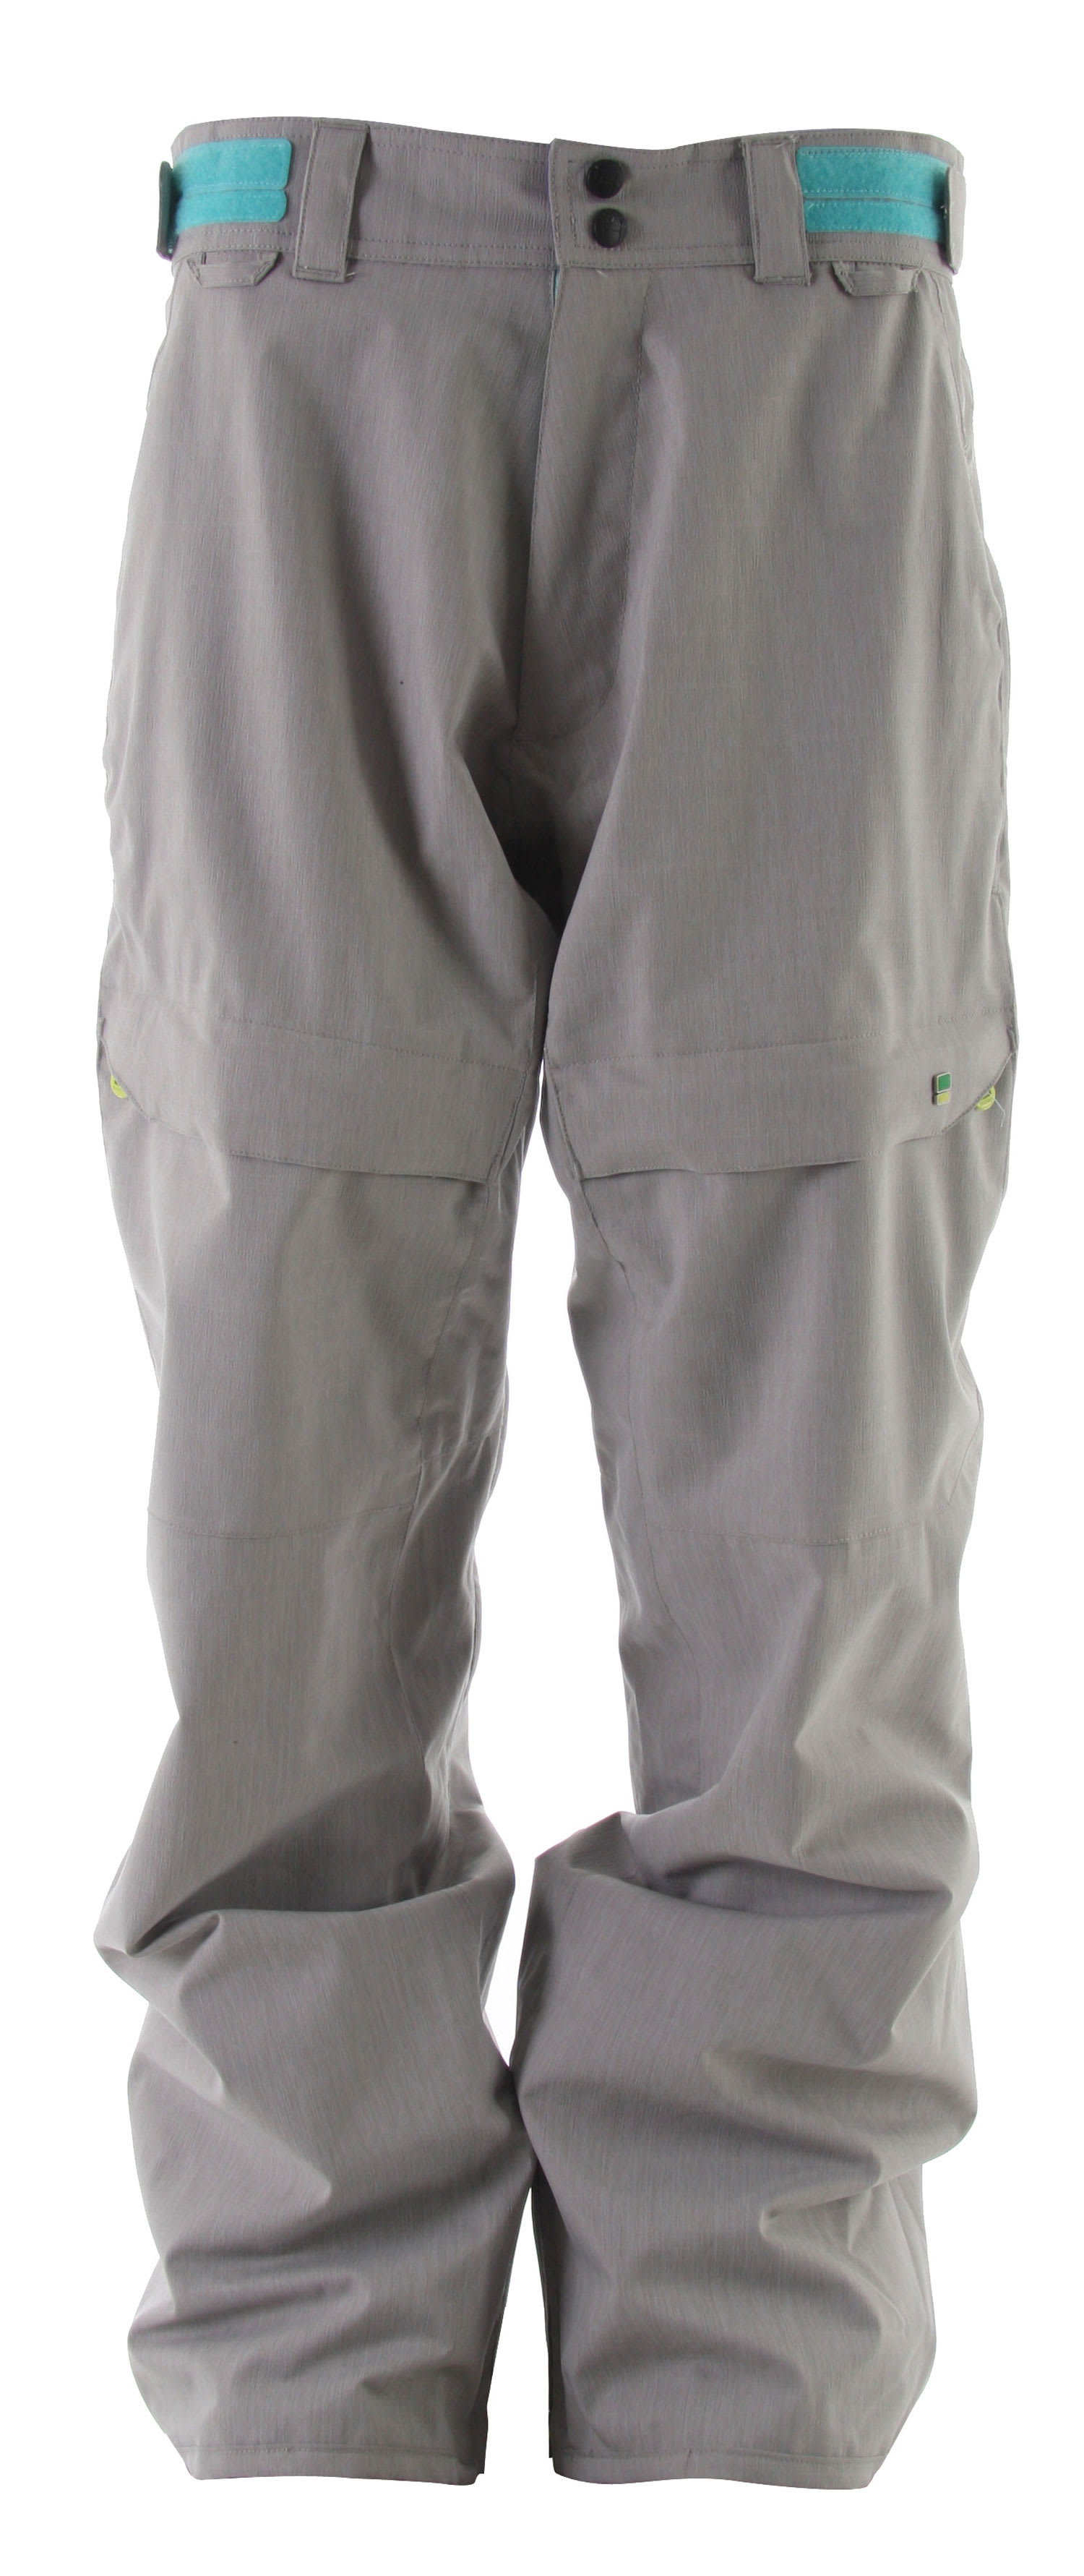 Shop for Bond Compound Snowboard Pants Ash - Men's